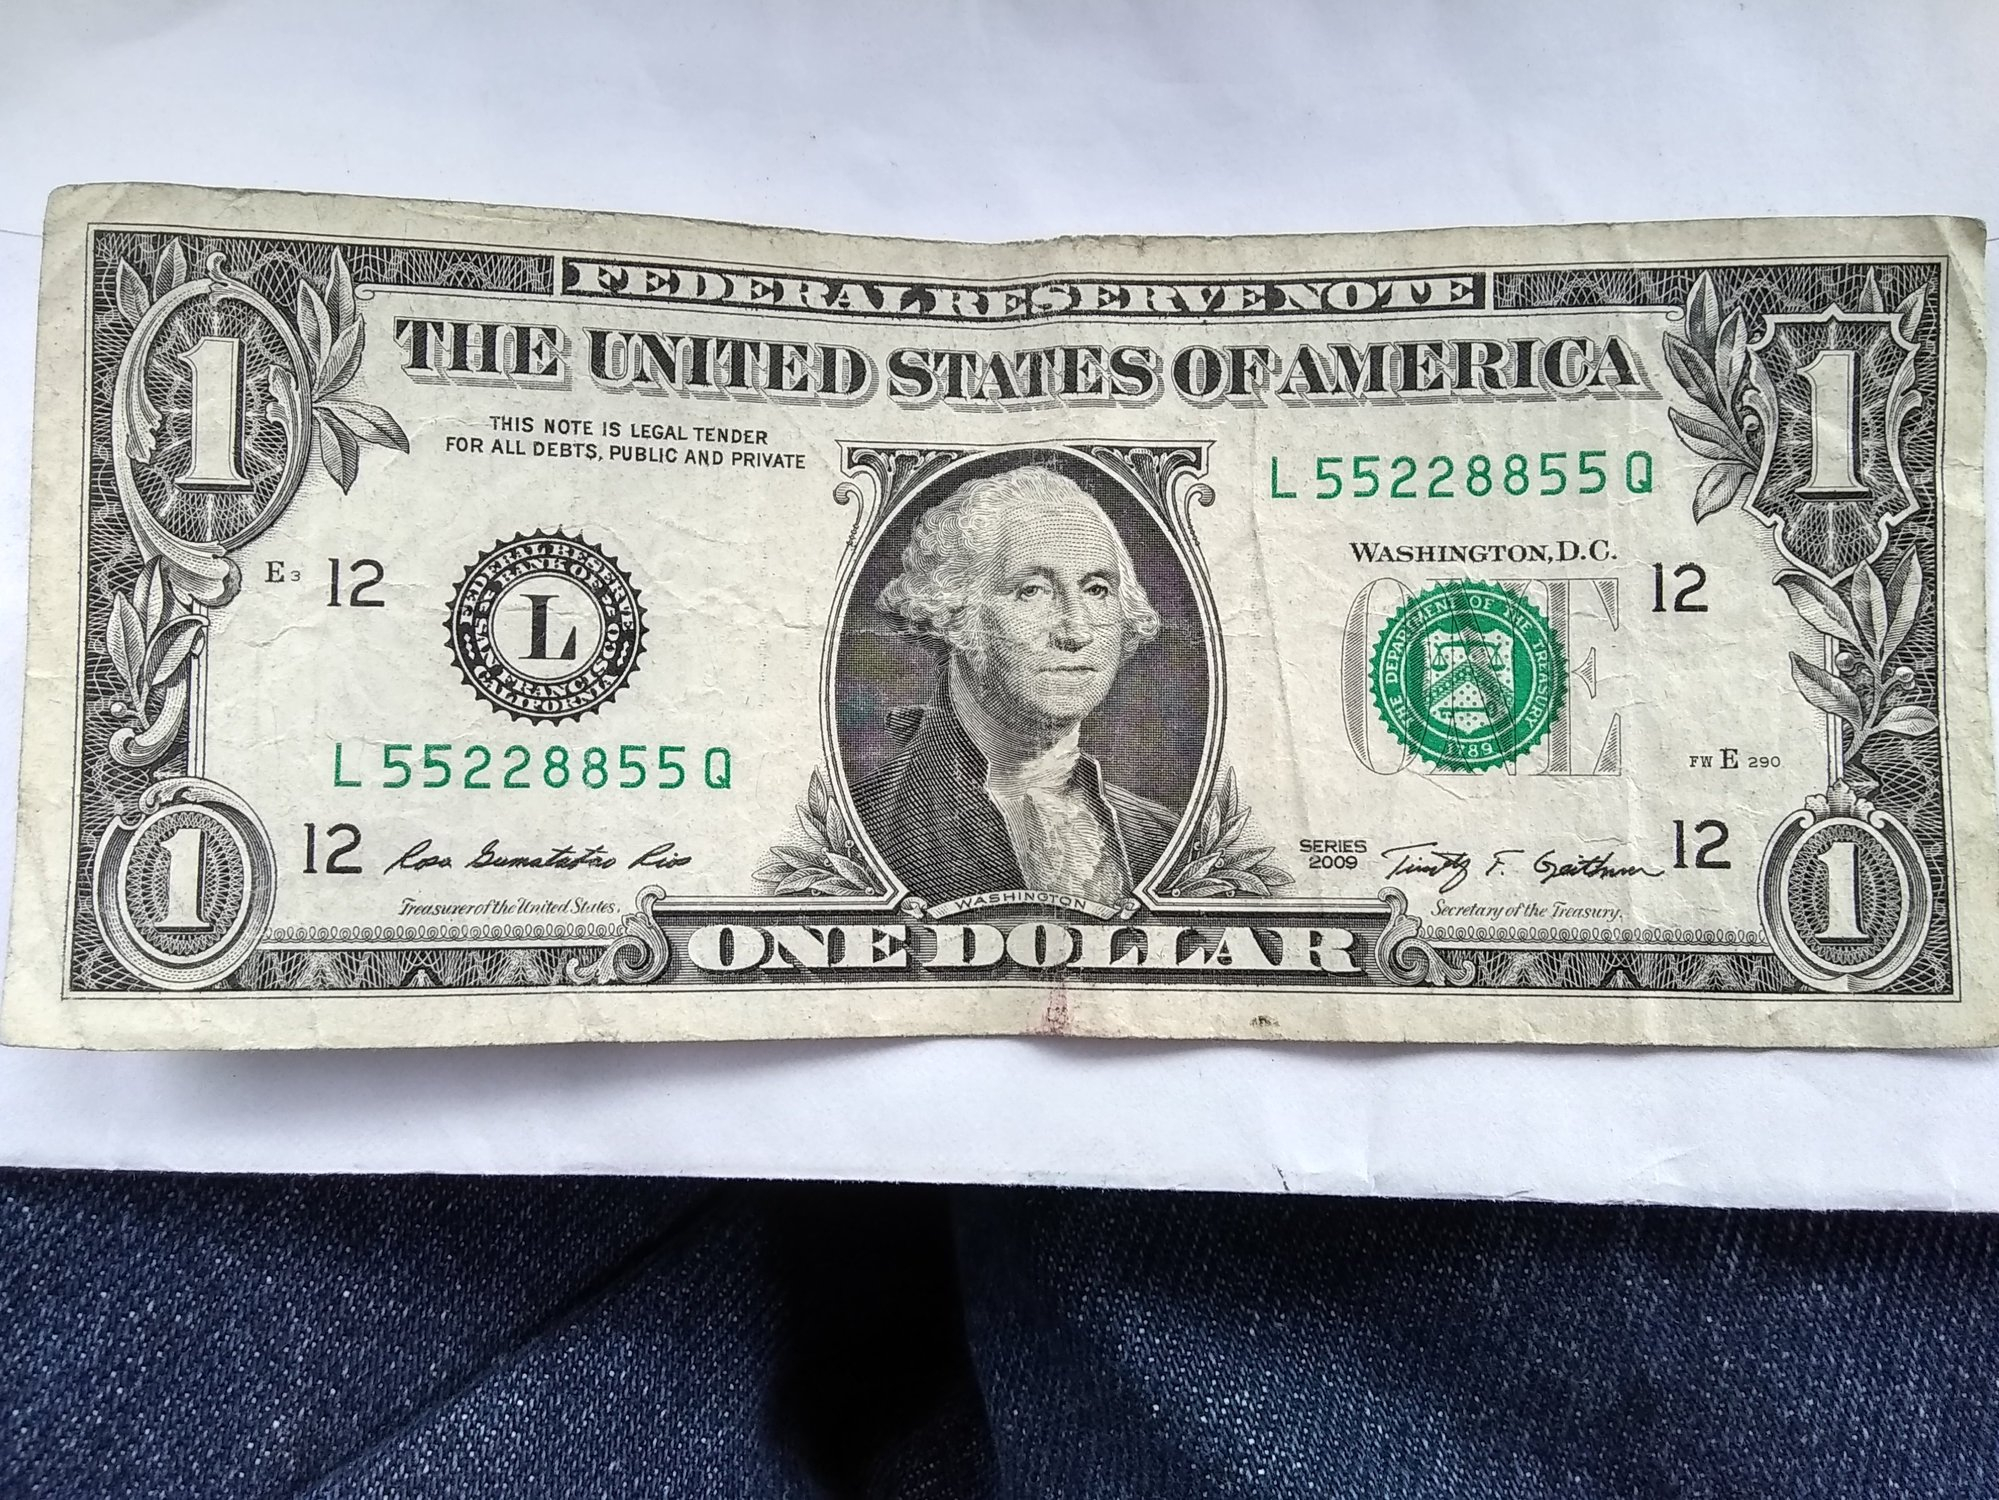 I Have This Fancy Serial Number $1 Bill For Sale